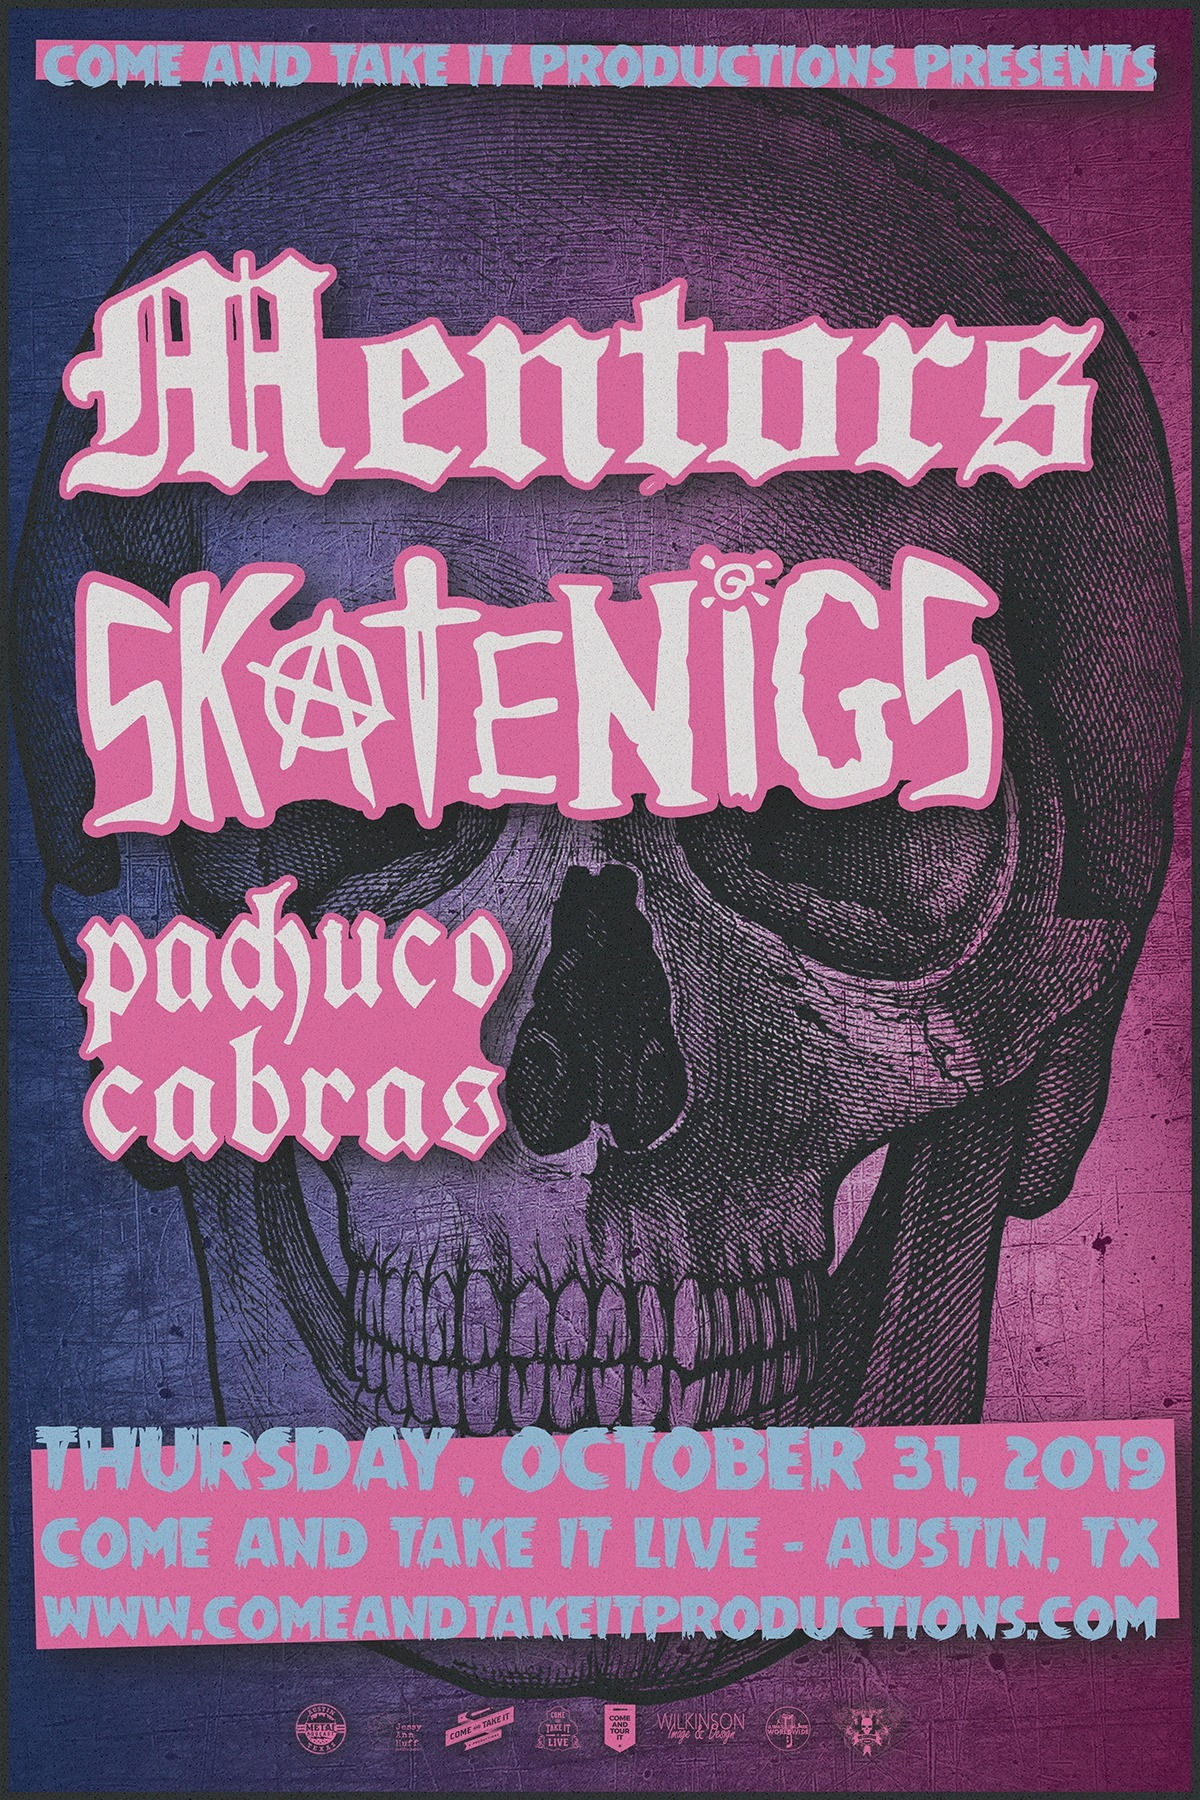 The Mentors, Skatenigs and Pachuco Cabras